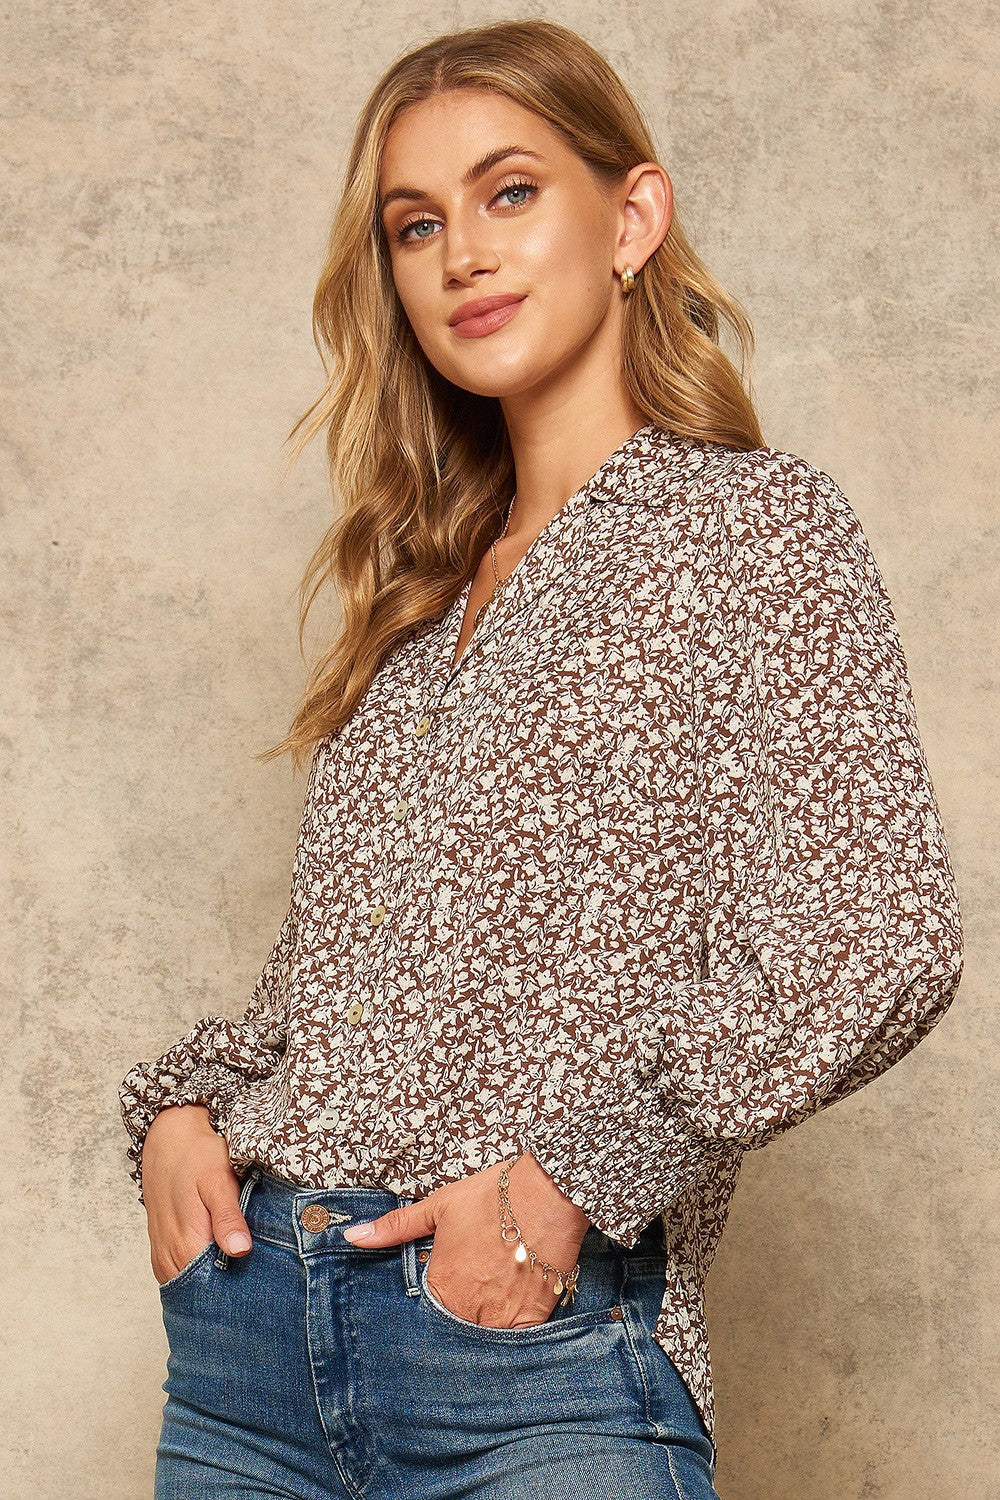 SALE! Daisy Top